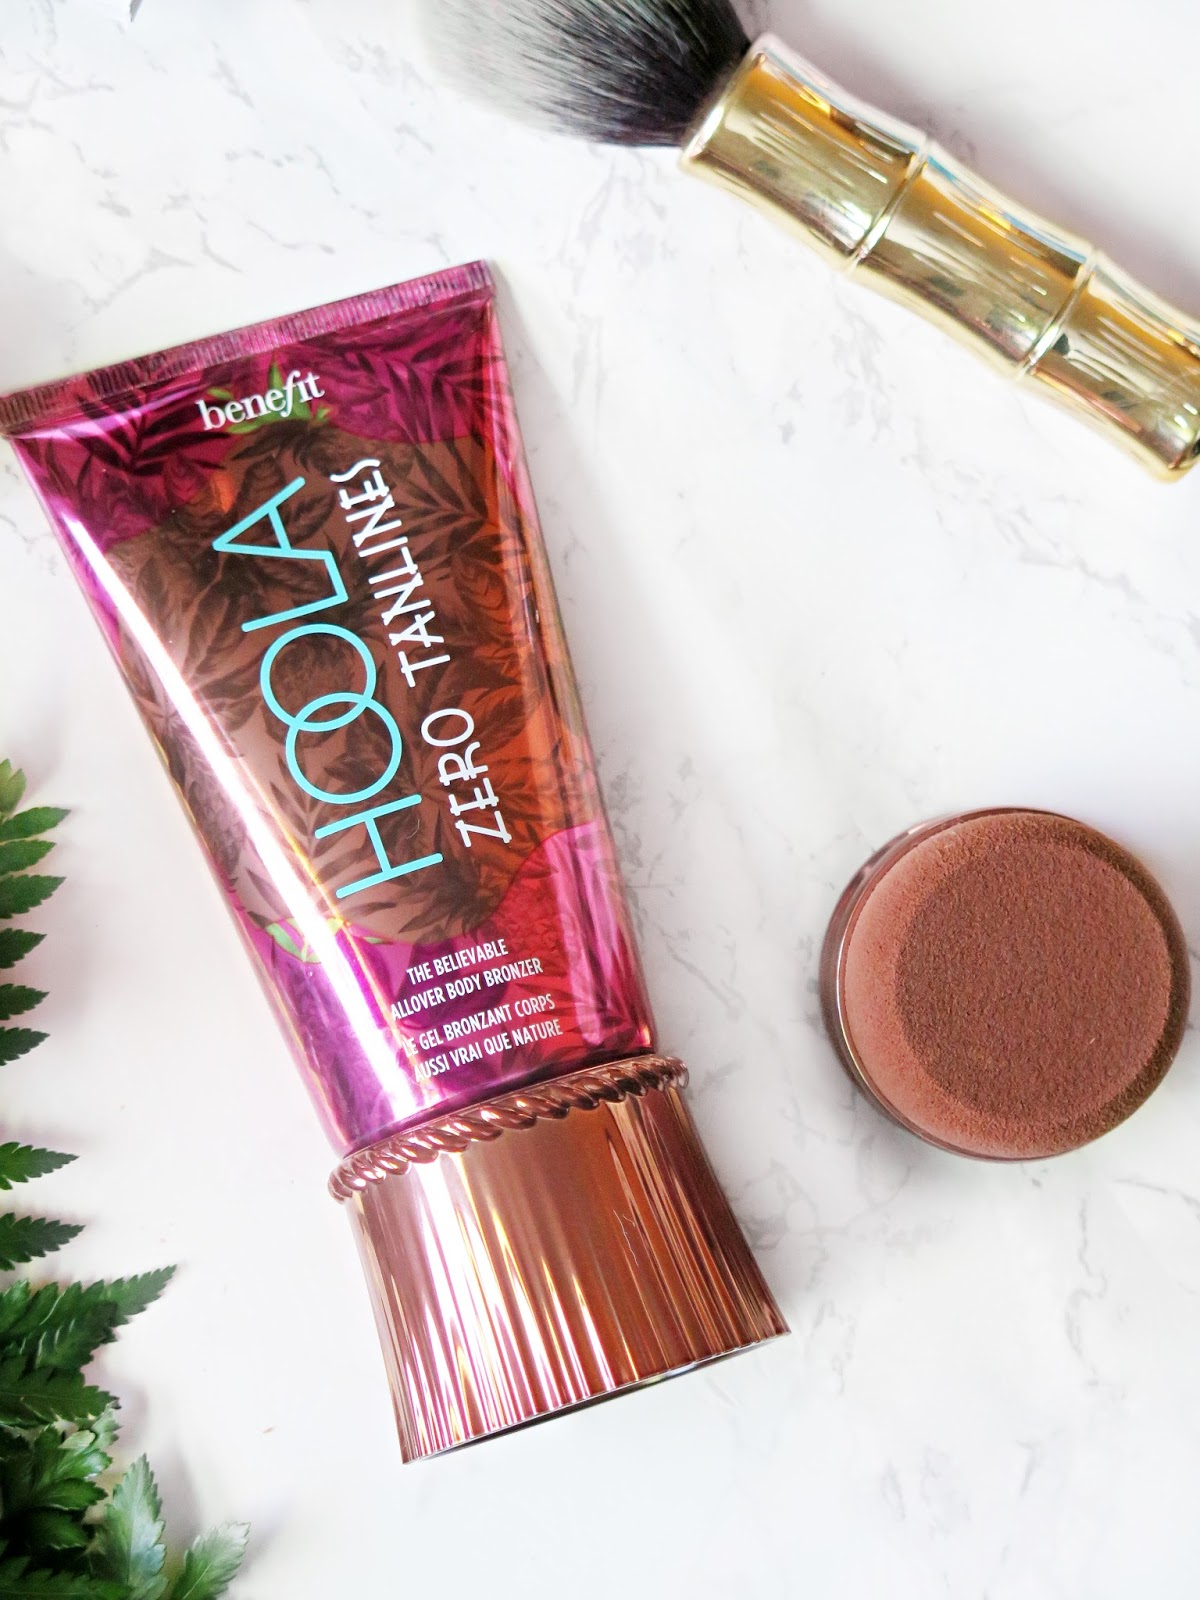 Let's Do The Hoola | Benefit Cosmetics Hoola Bronzing Collection | Review & Swatches | labellesirene.ca